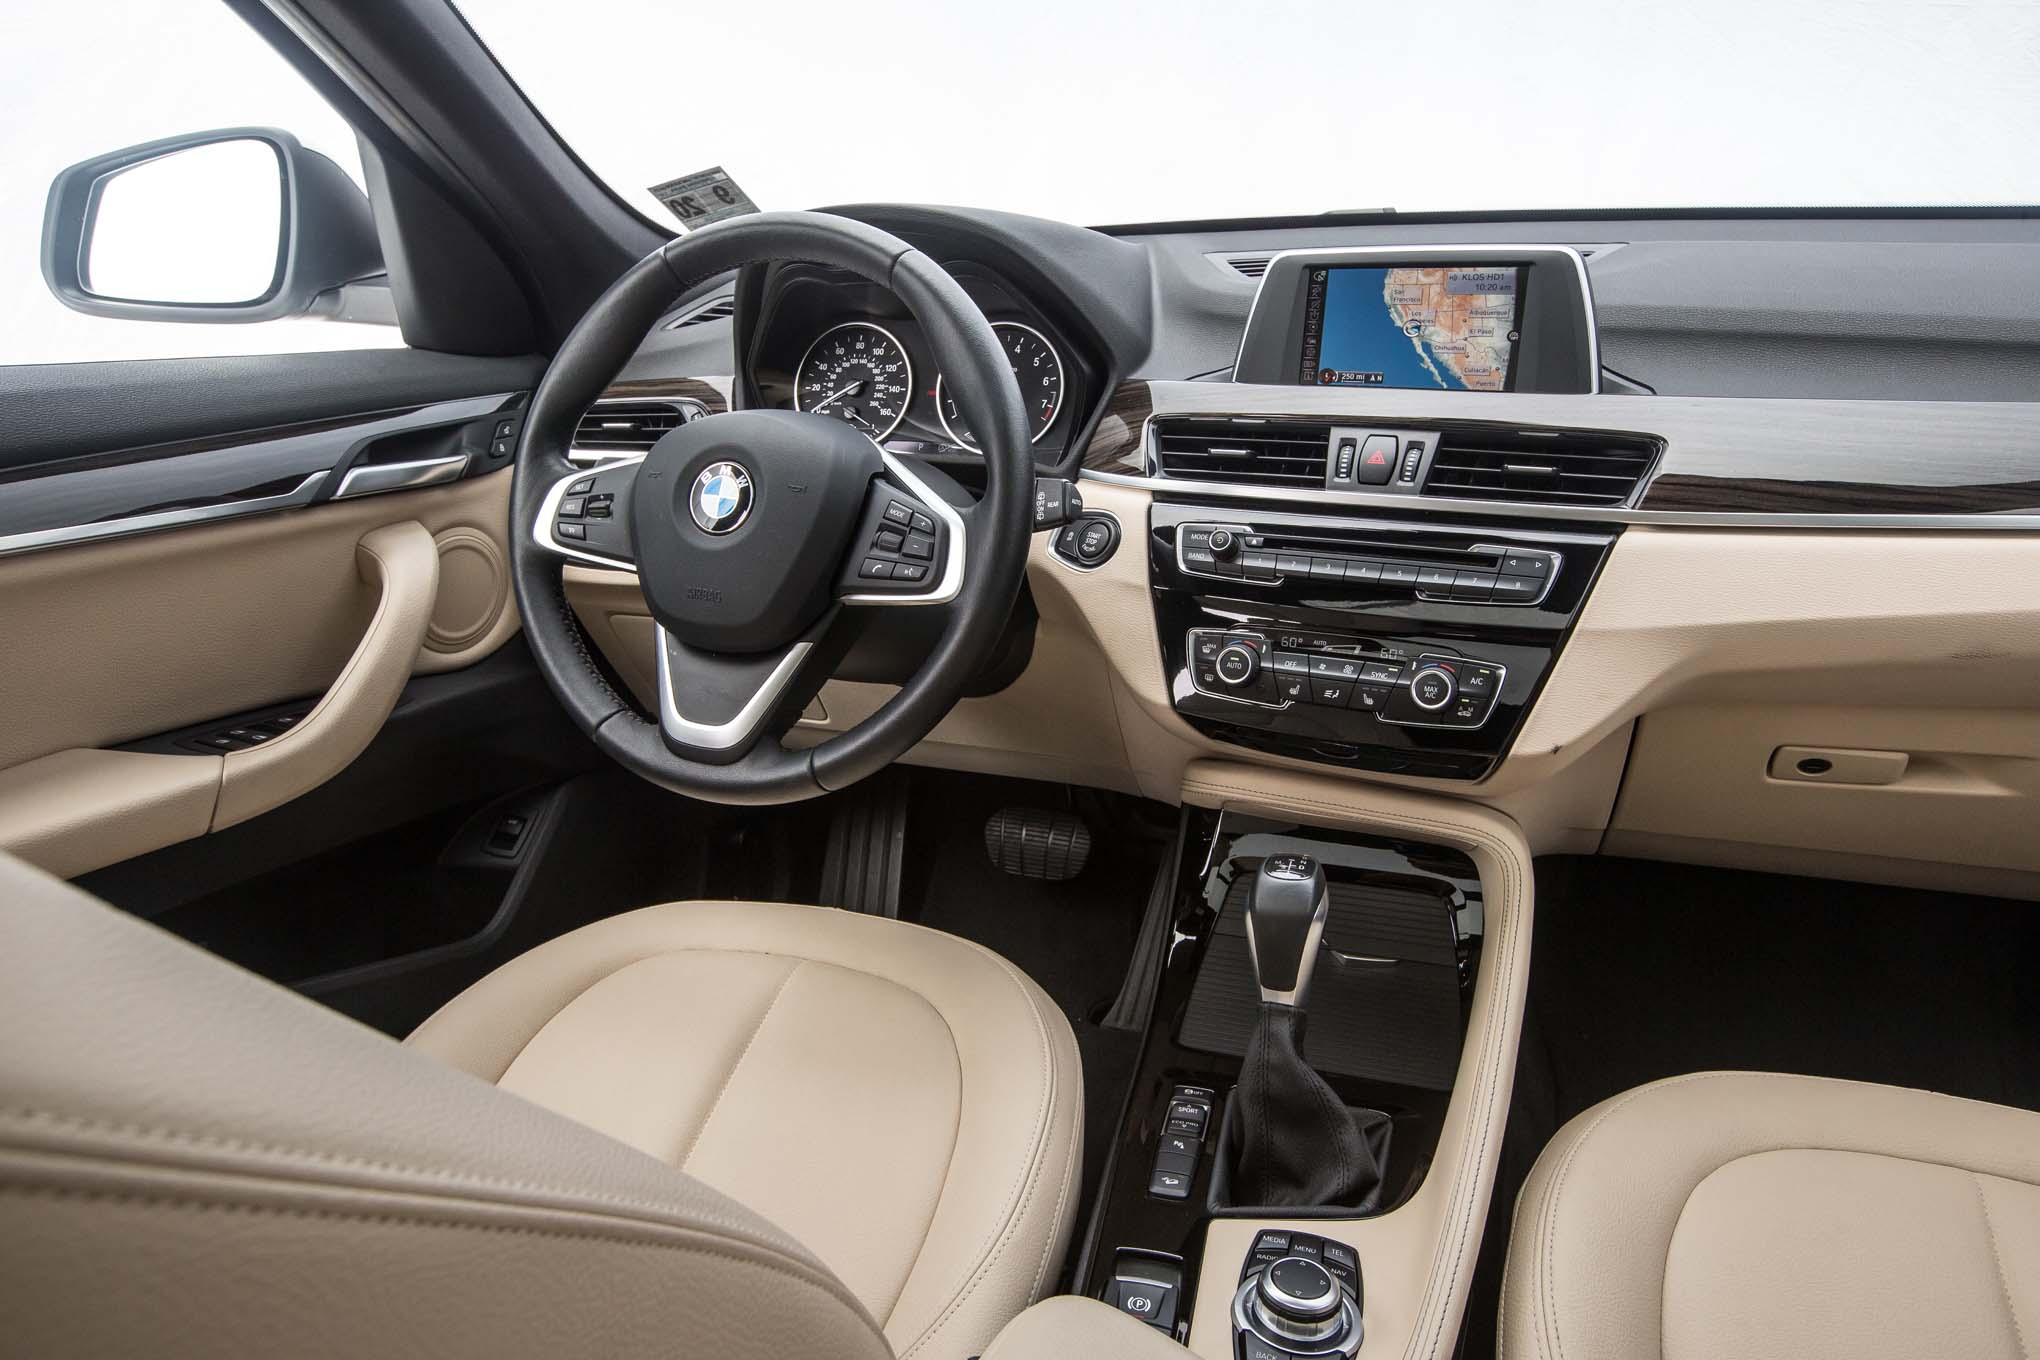 2017 BMW X1 XDrive28i Interior Driver Cockpit And Dash (Photo 10 of 23)